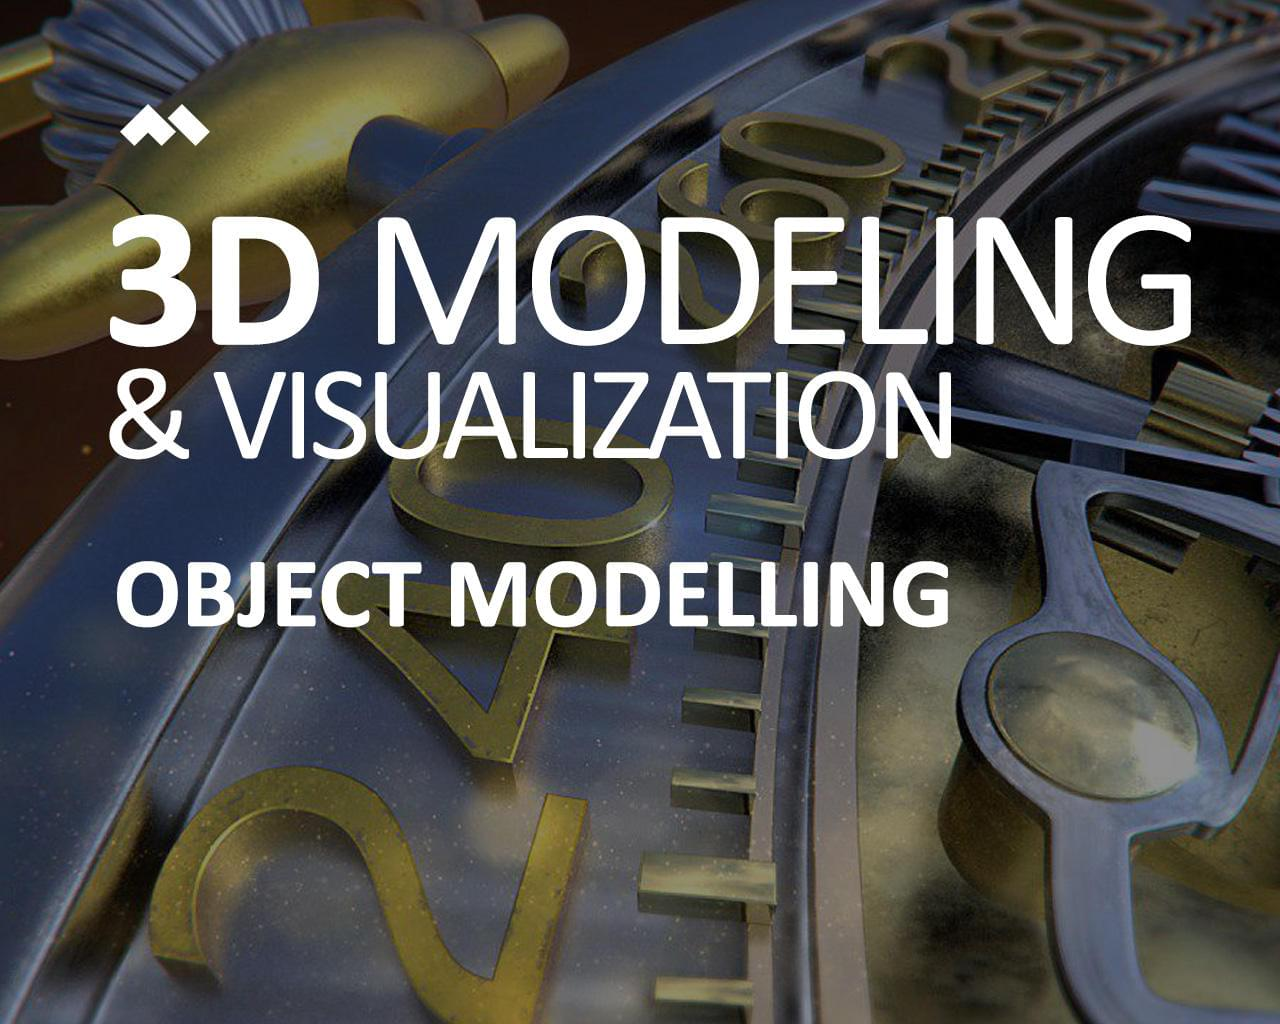 3D Modeling & Visualization by minimalthemes - 114029